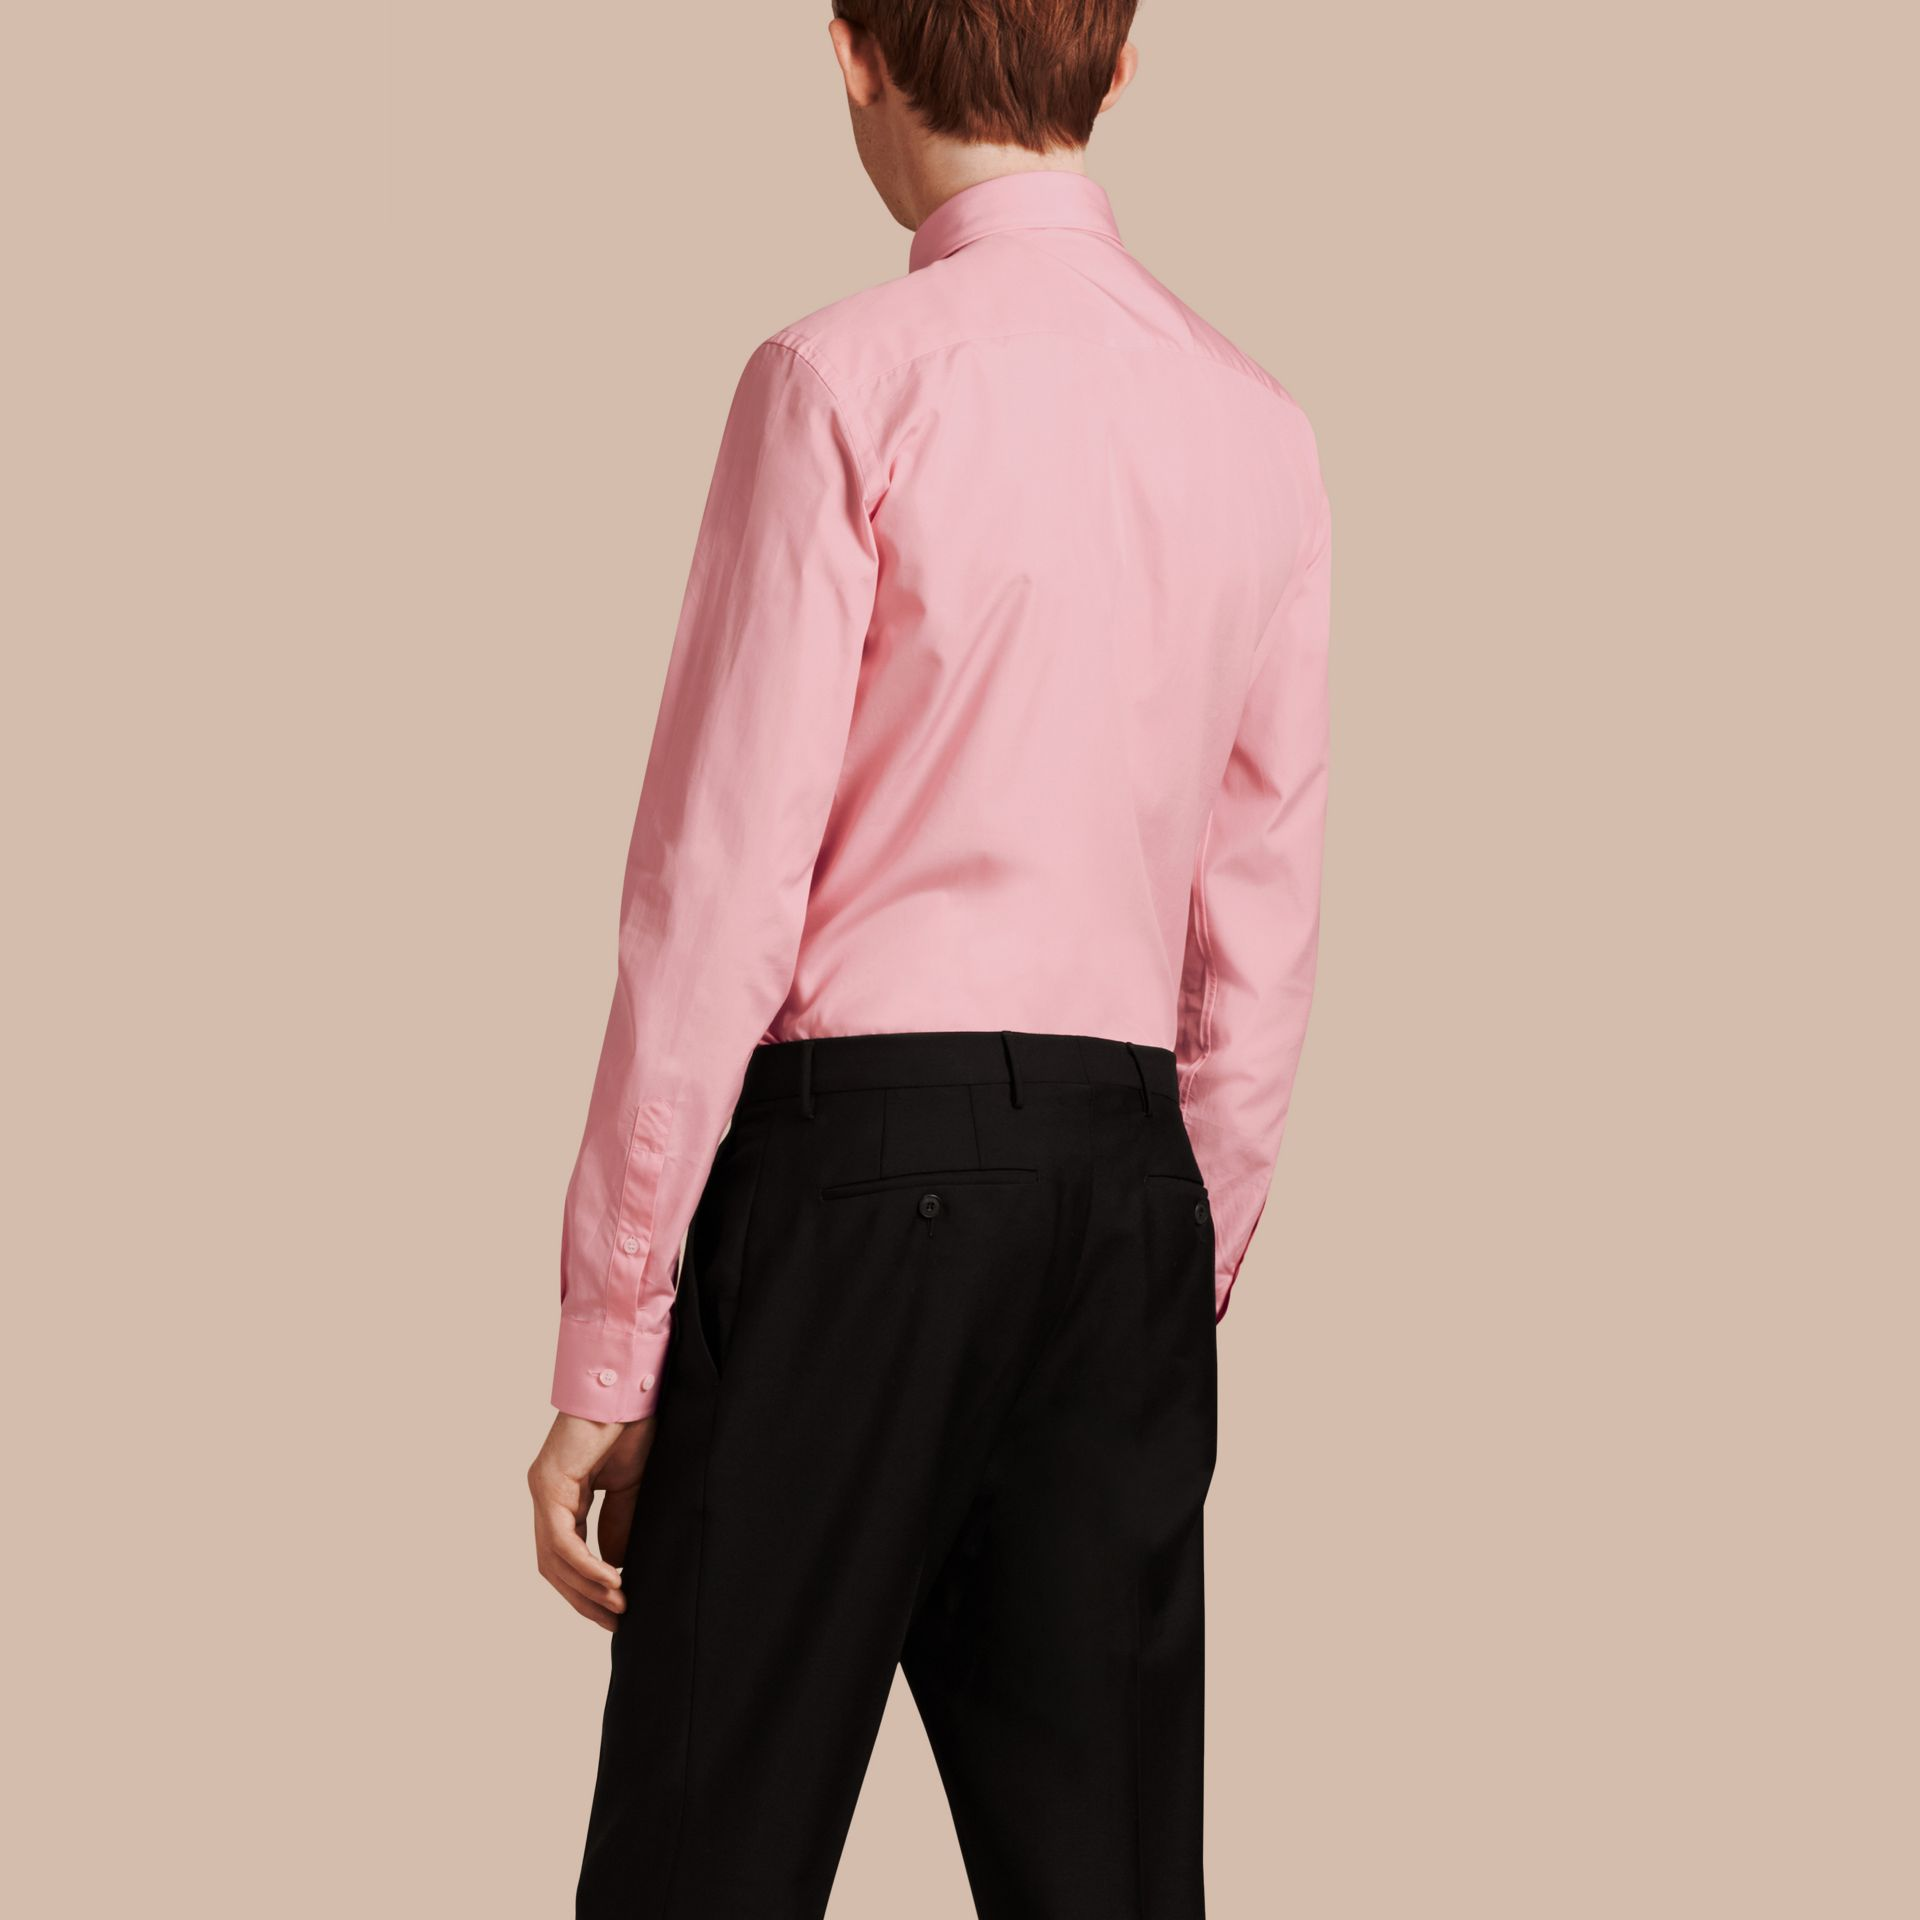 City pink Slim Fit Cotton Poplin Shirt City Pink - gallery image 3